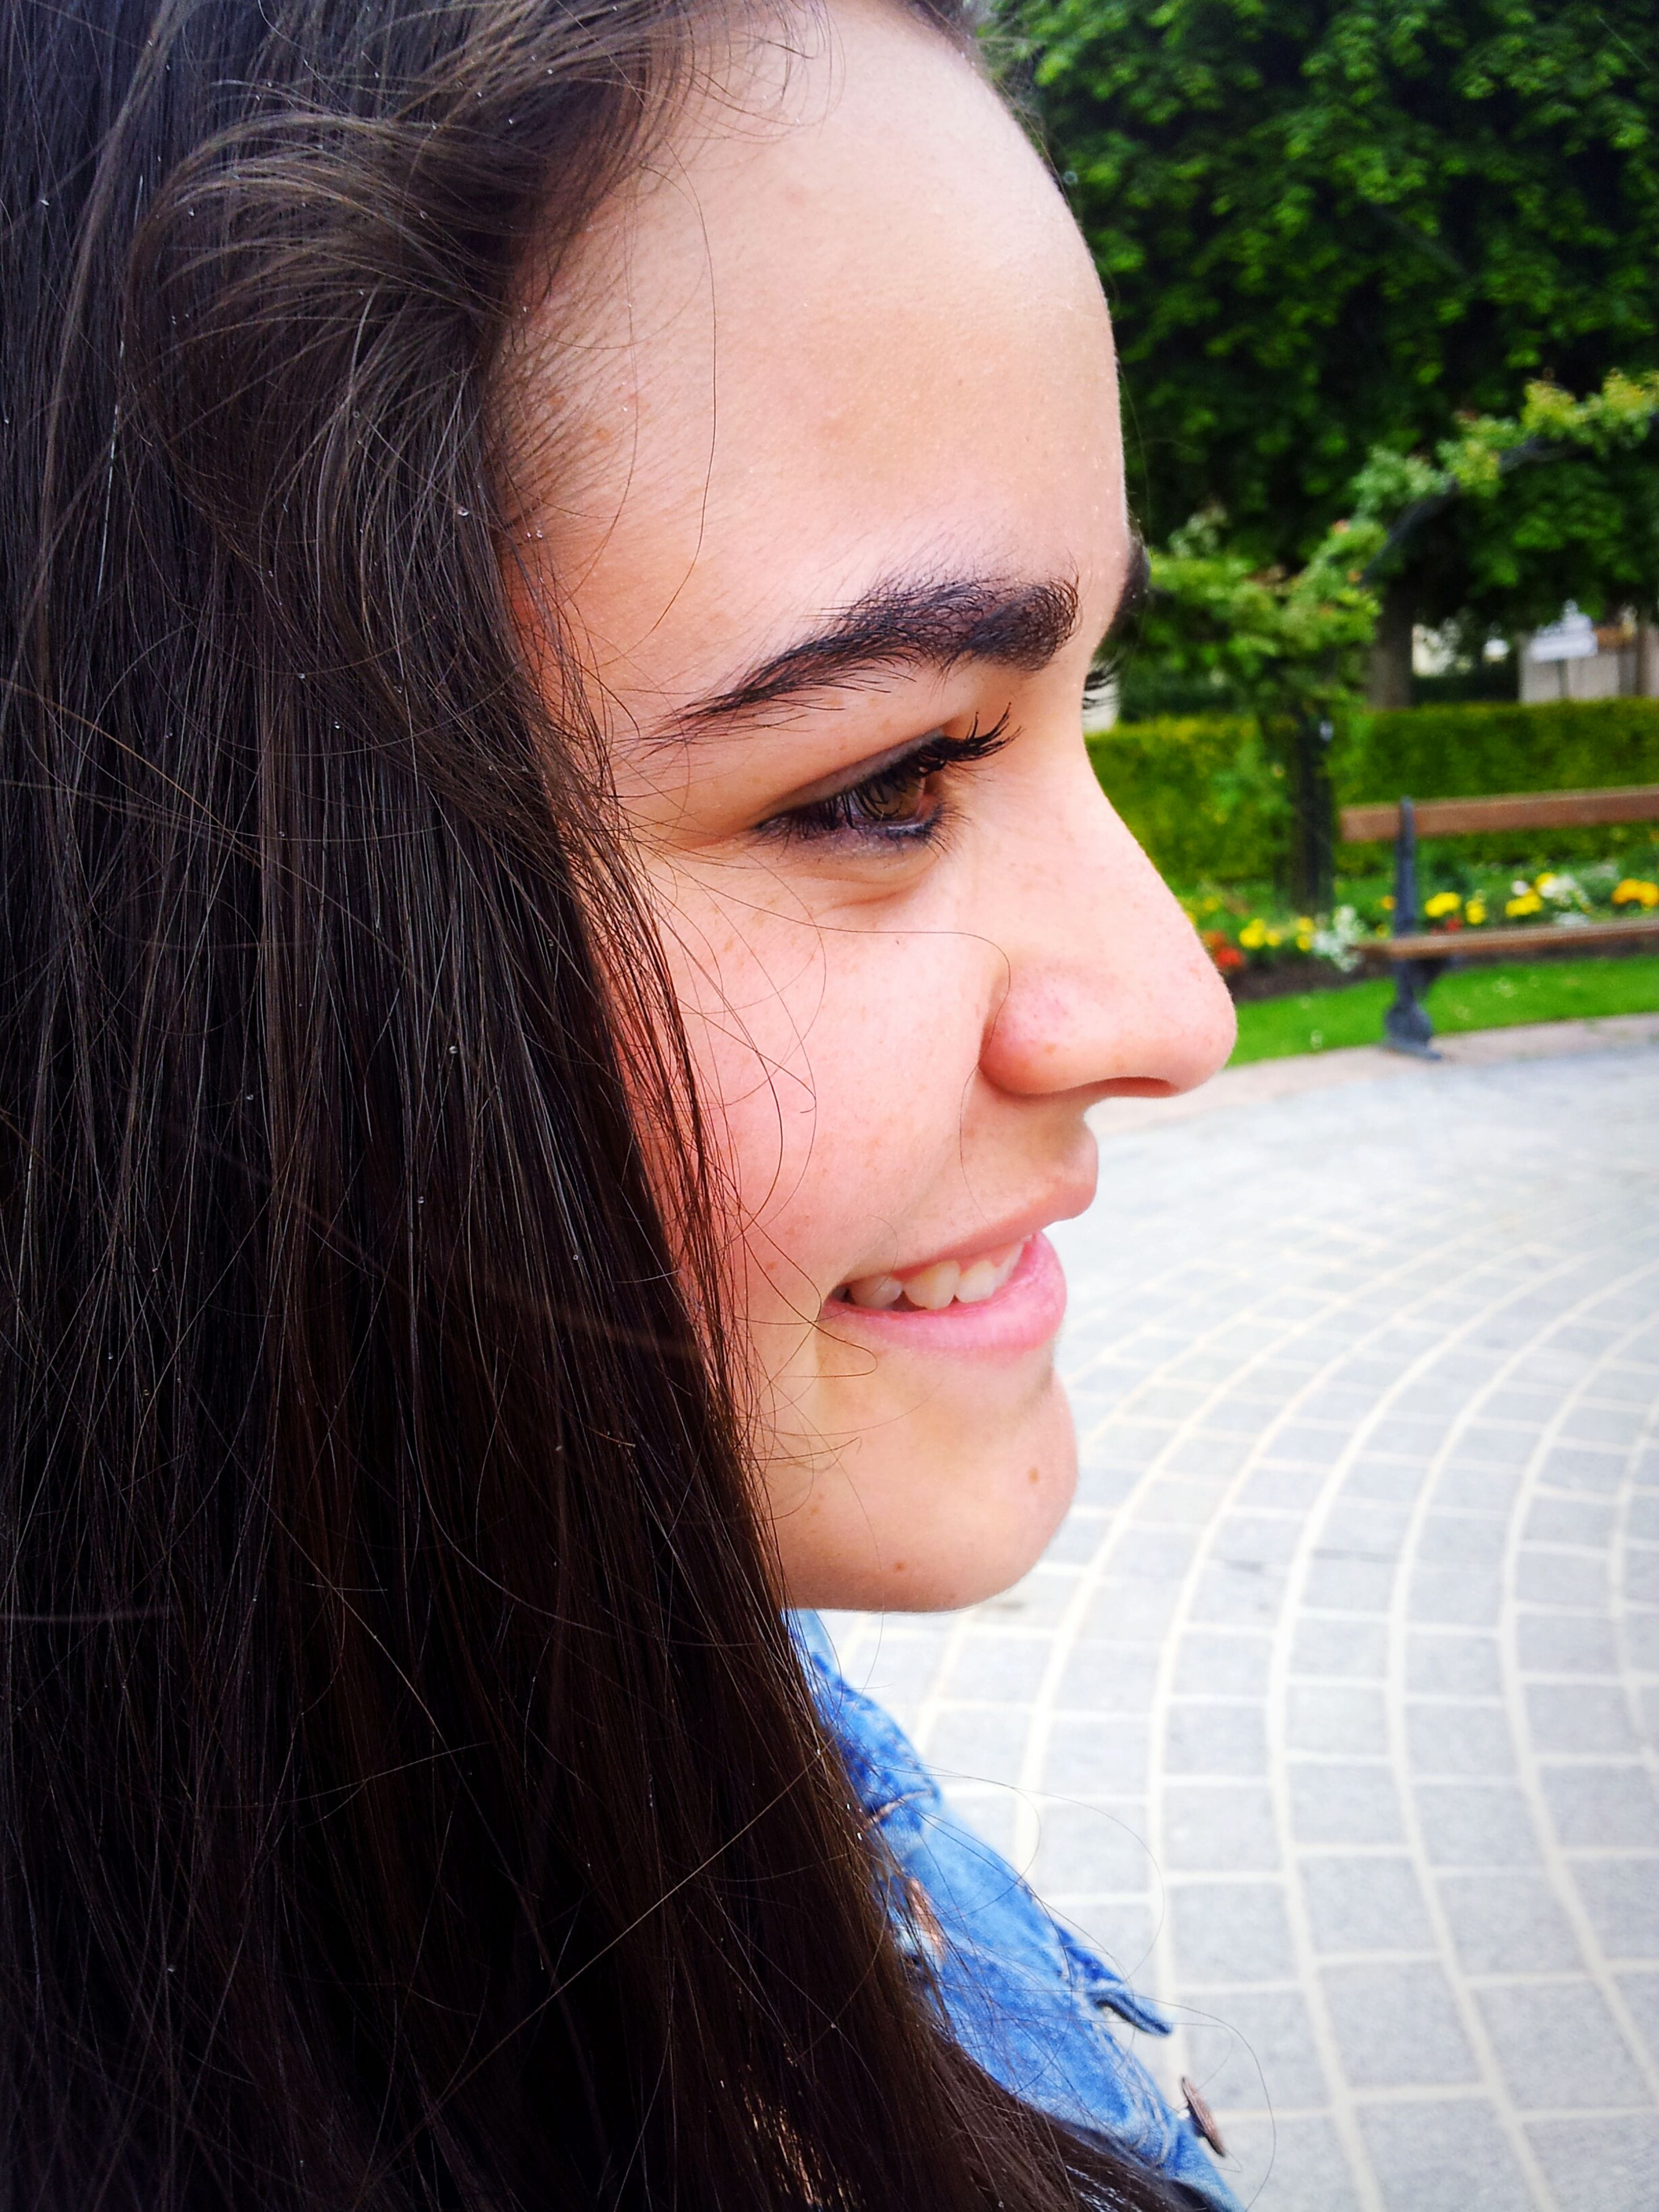 person, young adult, looking at camera, headshot, portrait, young women, lifestyles, close-up, front view, human face, long hair, leisure activity, beauty, focus on foreground, smiling, contemplation, head and shoulders